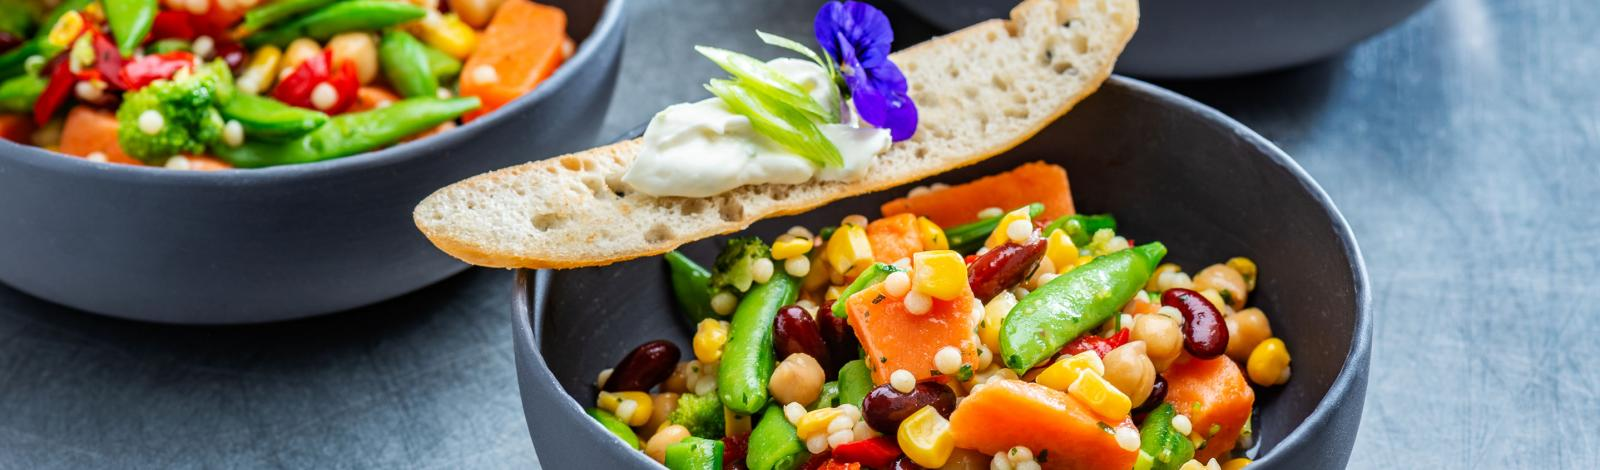 Grazing table: Glorious Texane Peas